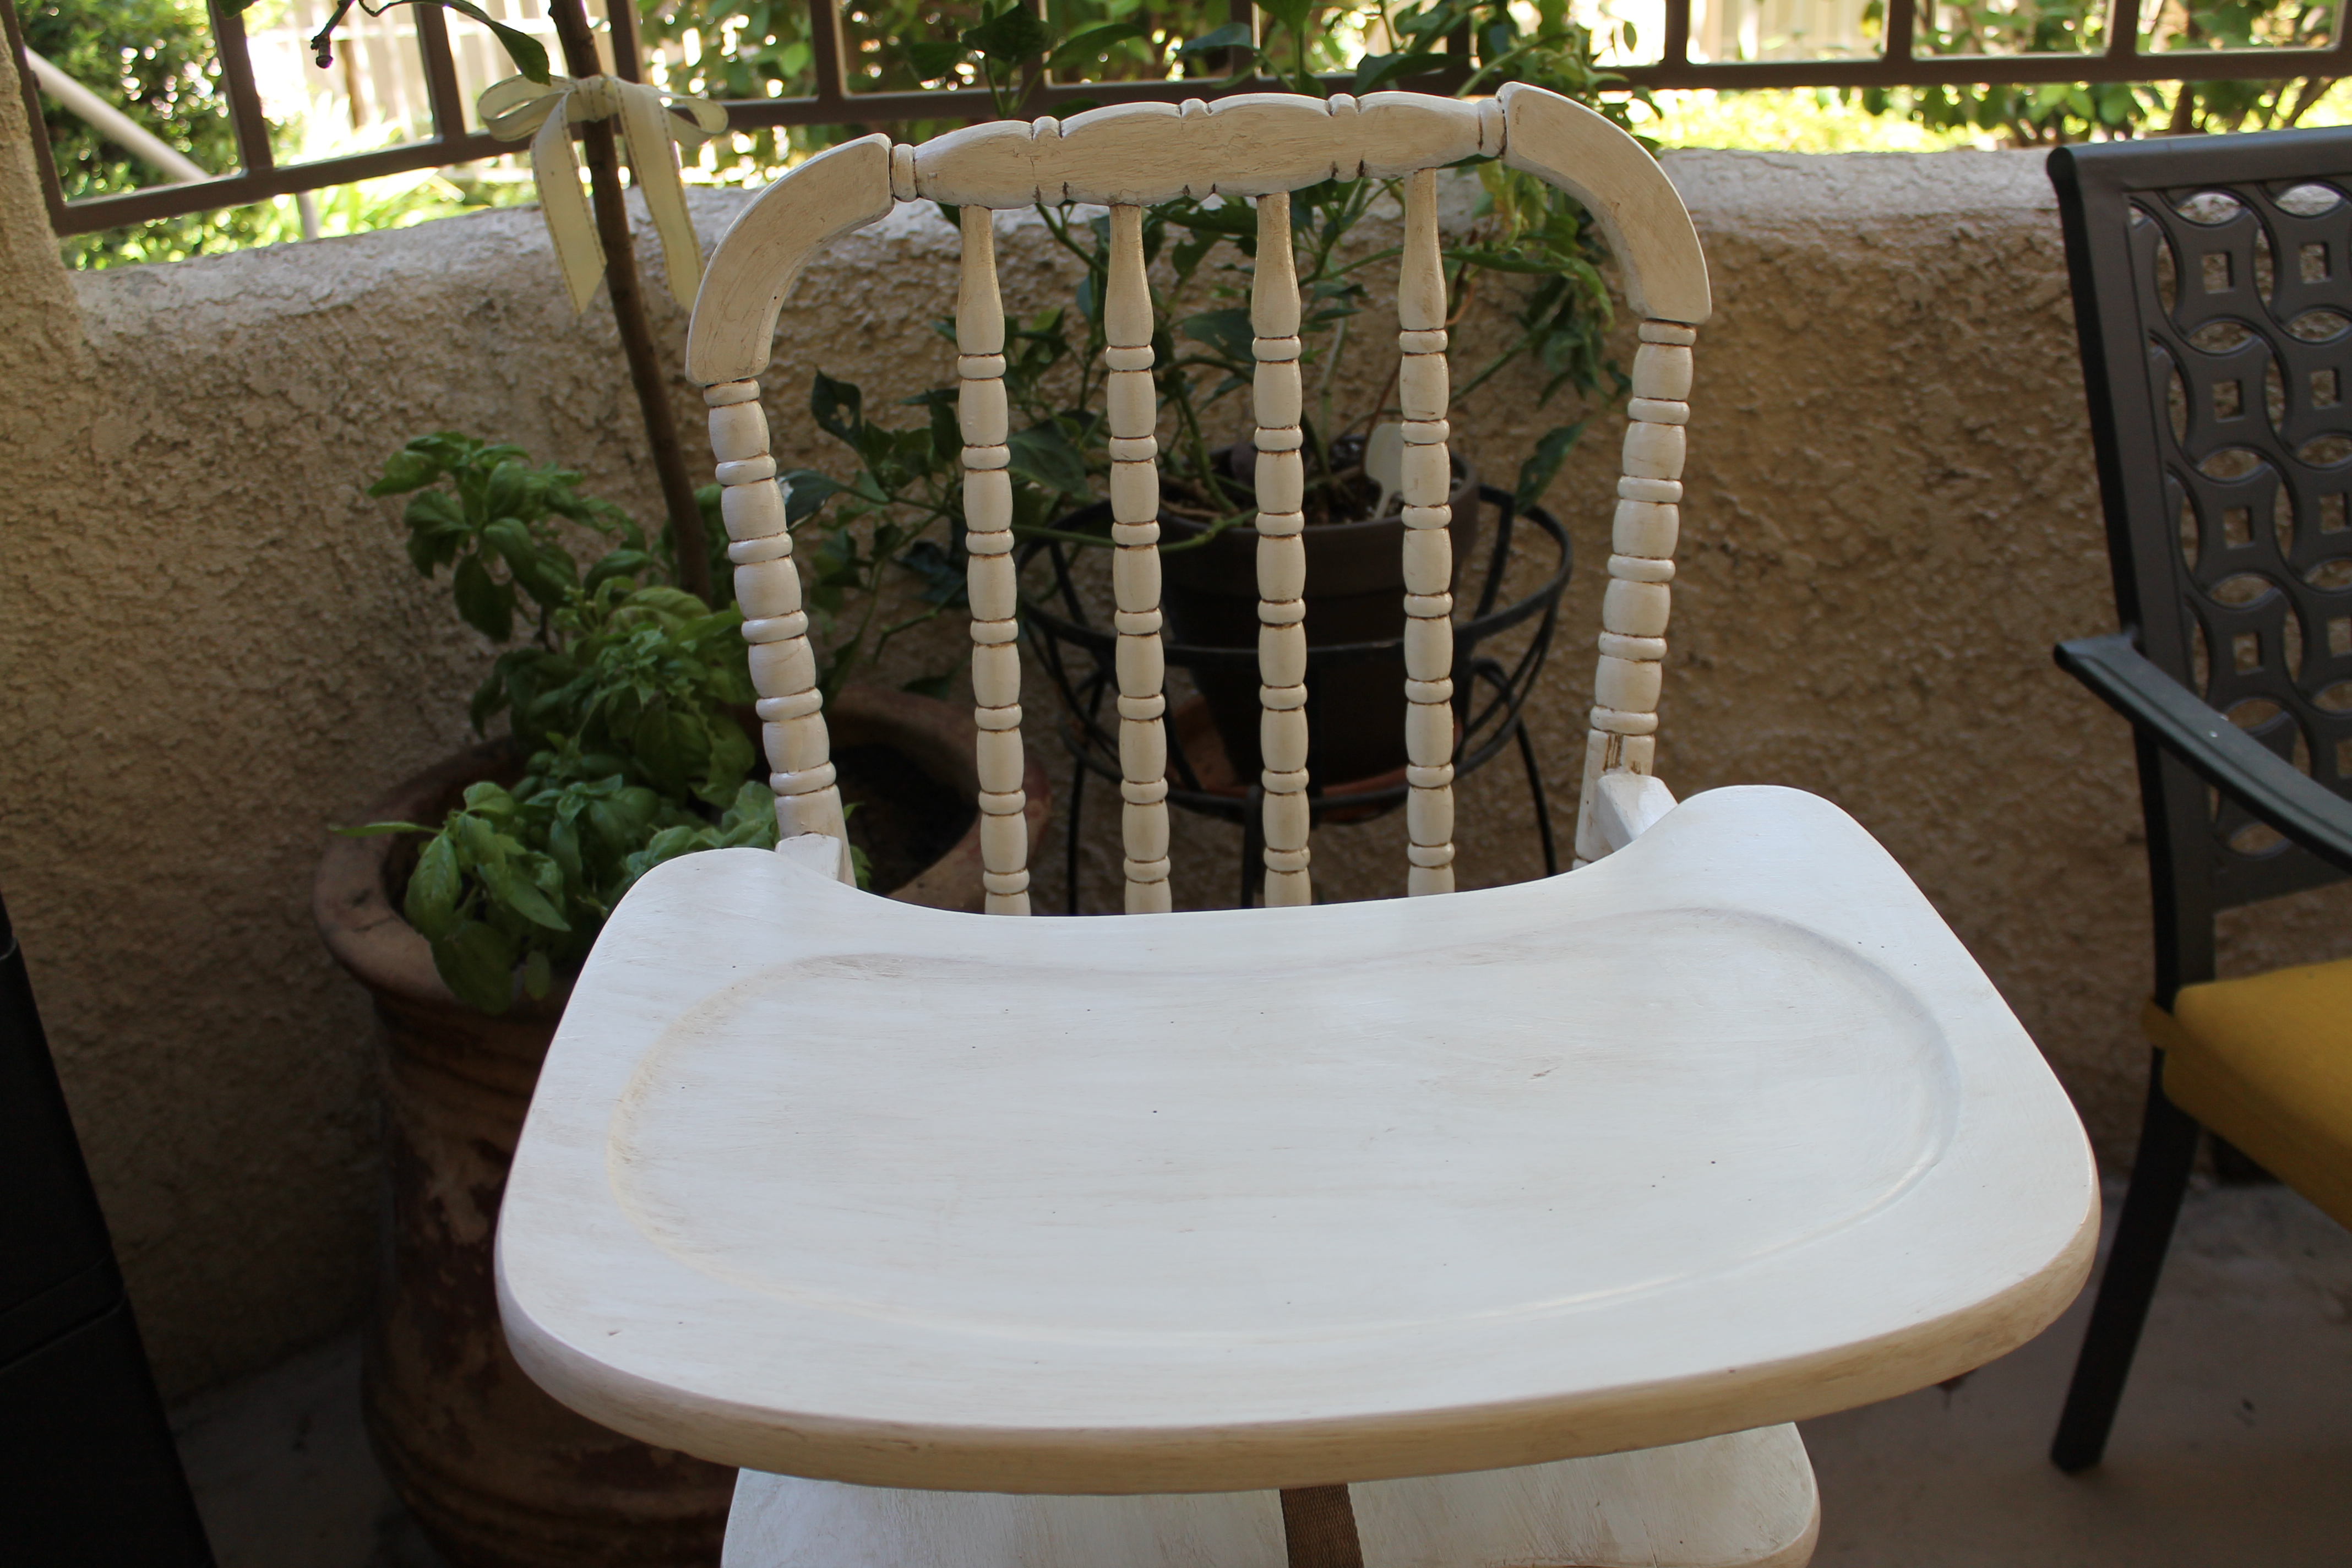 Vintage wooden high chair - In